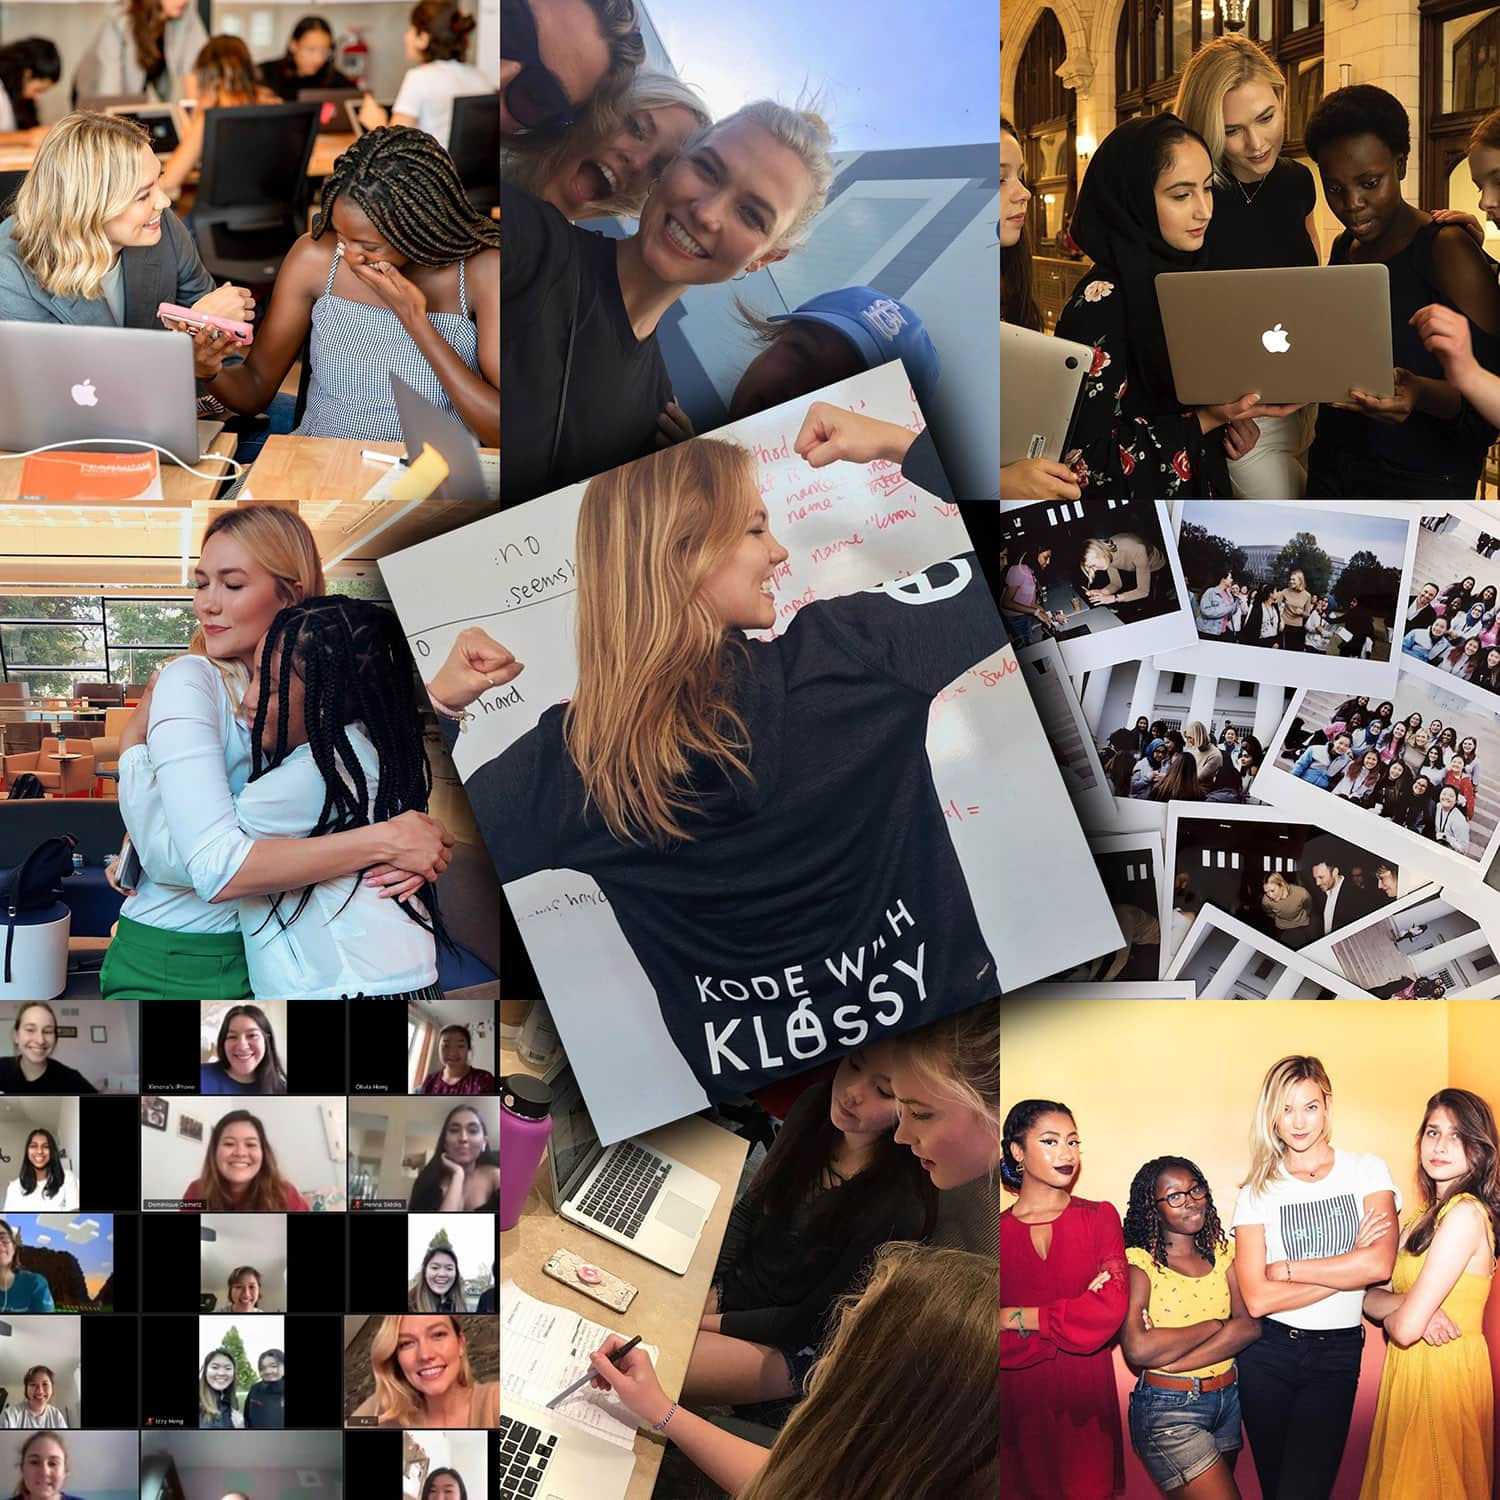 Karlie Kloss and Kode with Klossy - free camp for girls